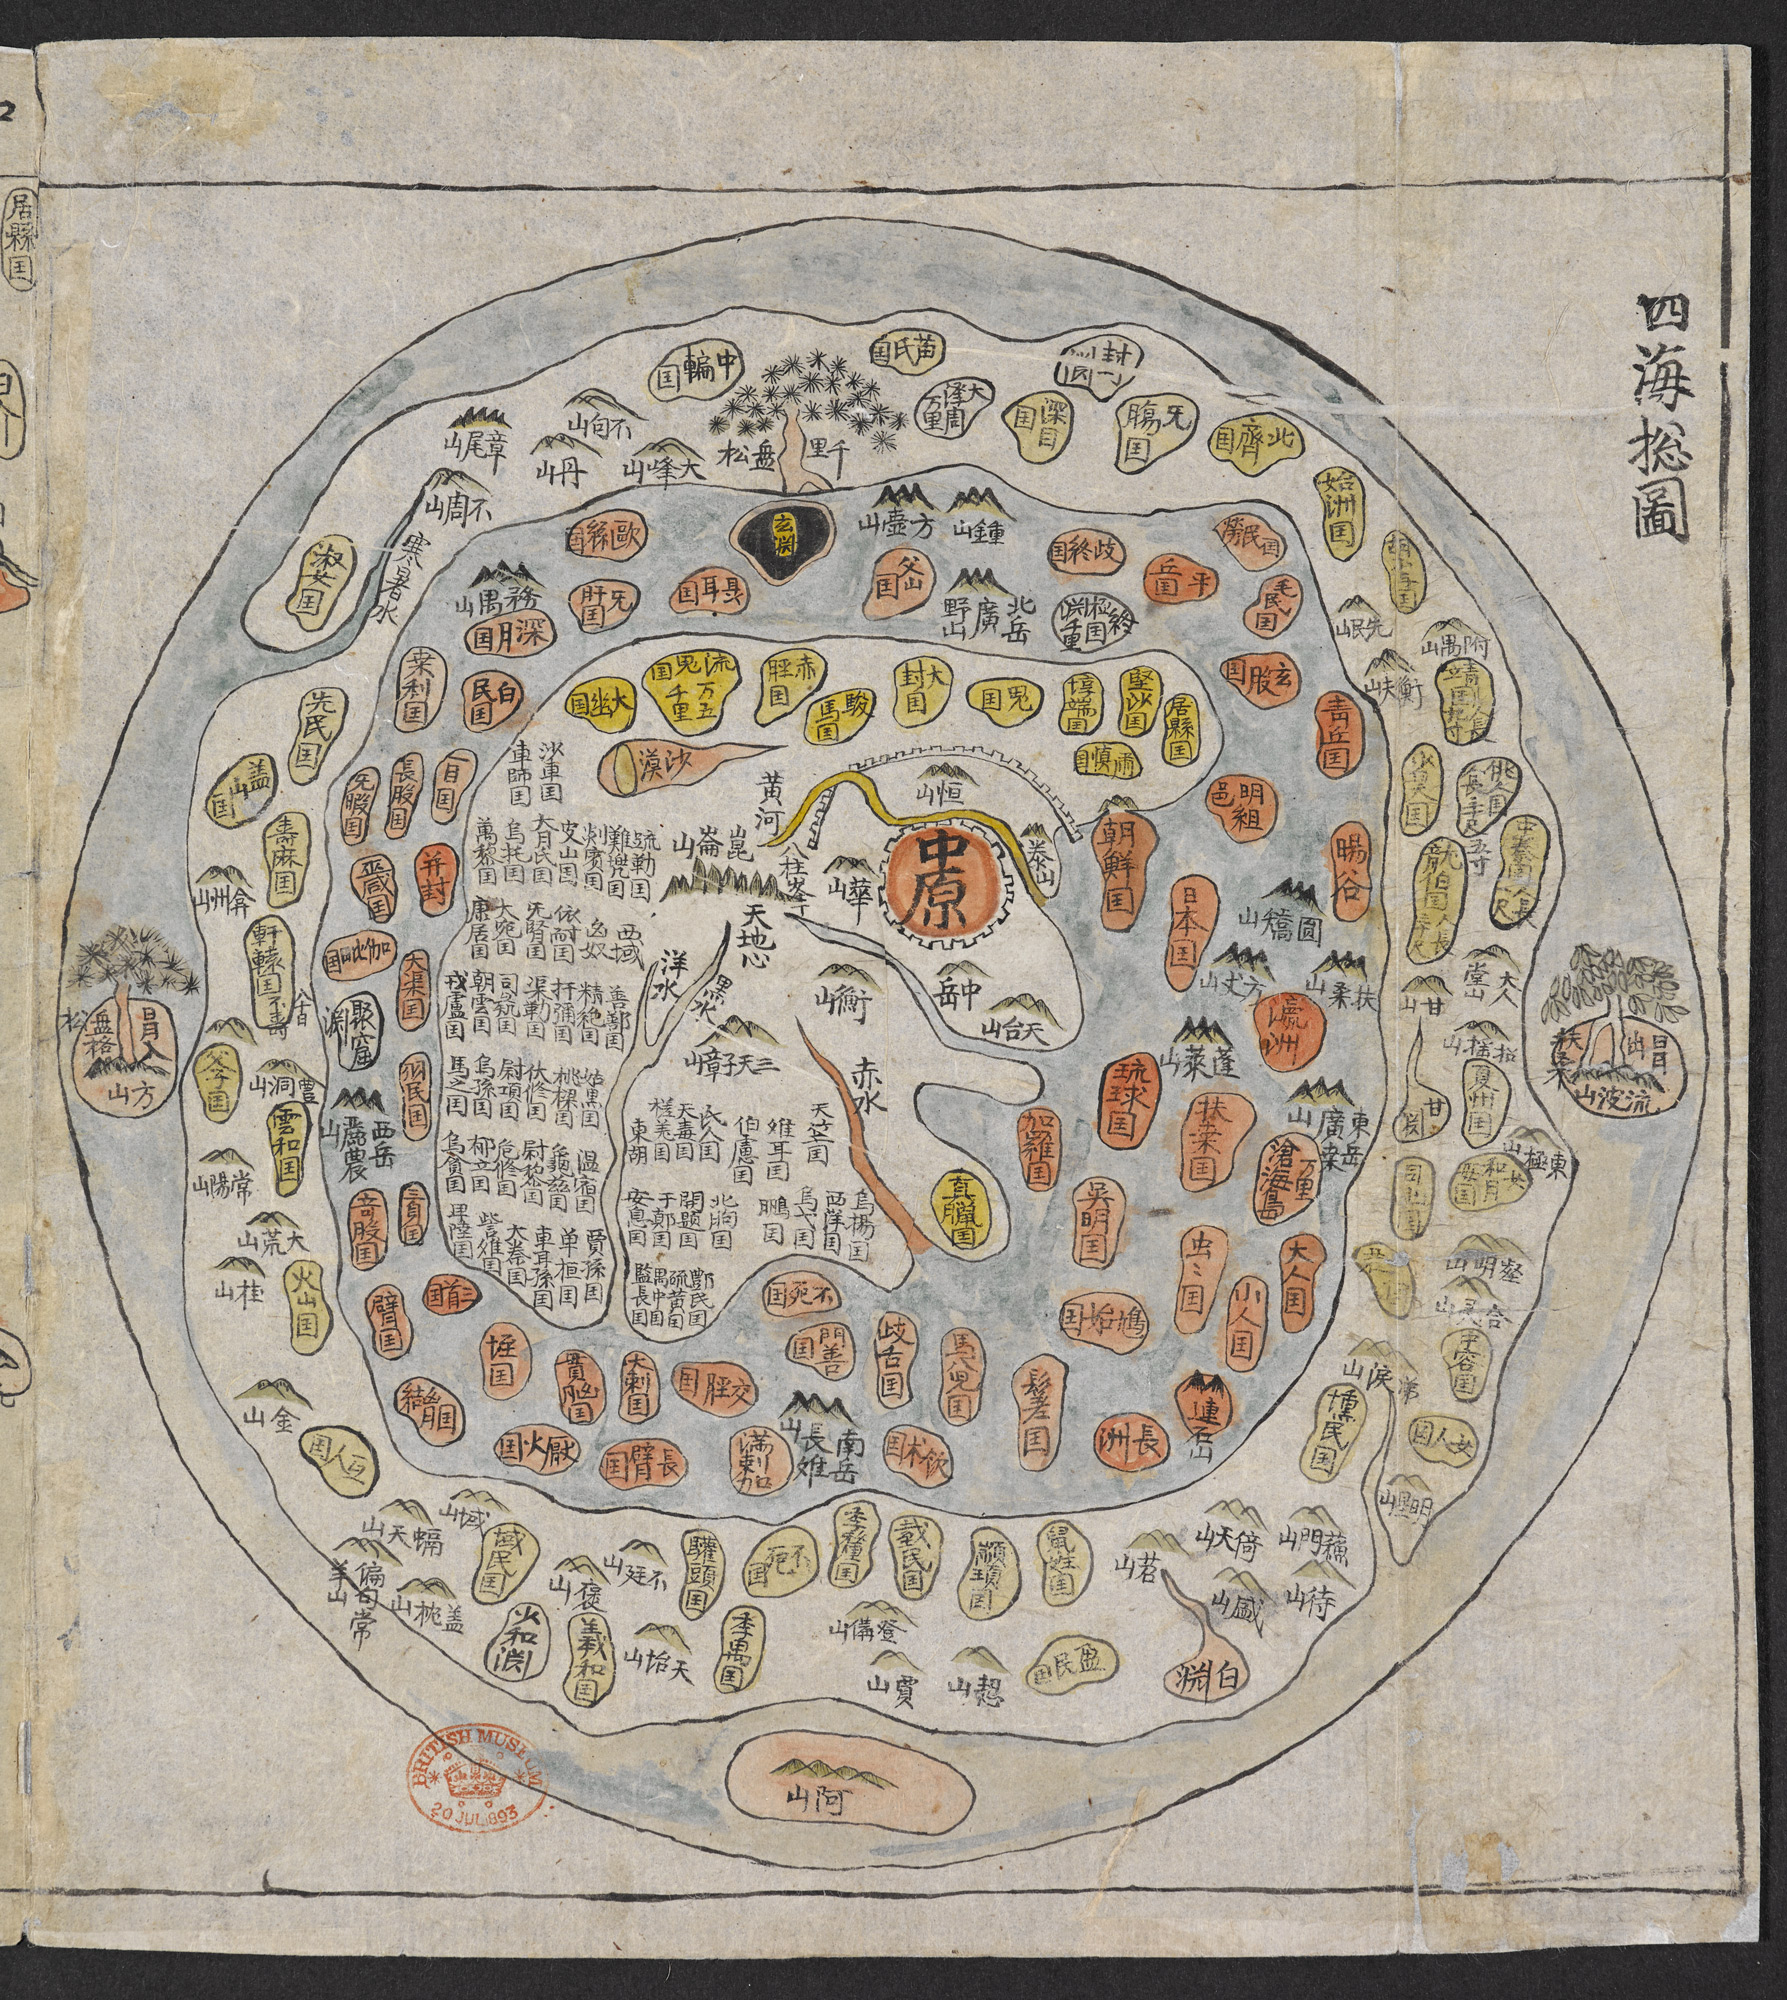 Cheonhado\' world map. Seoul, c. 1800. - The British Library